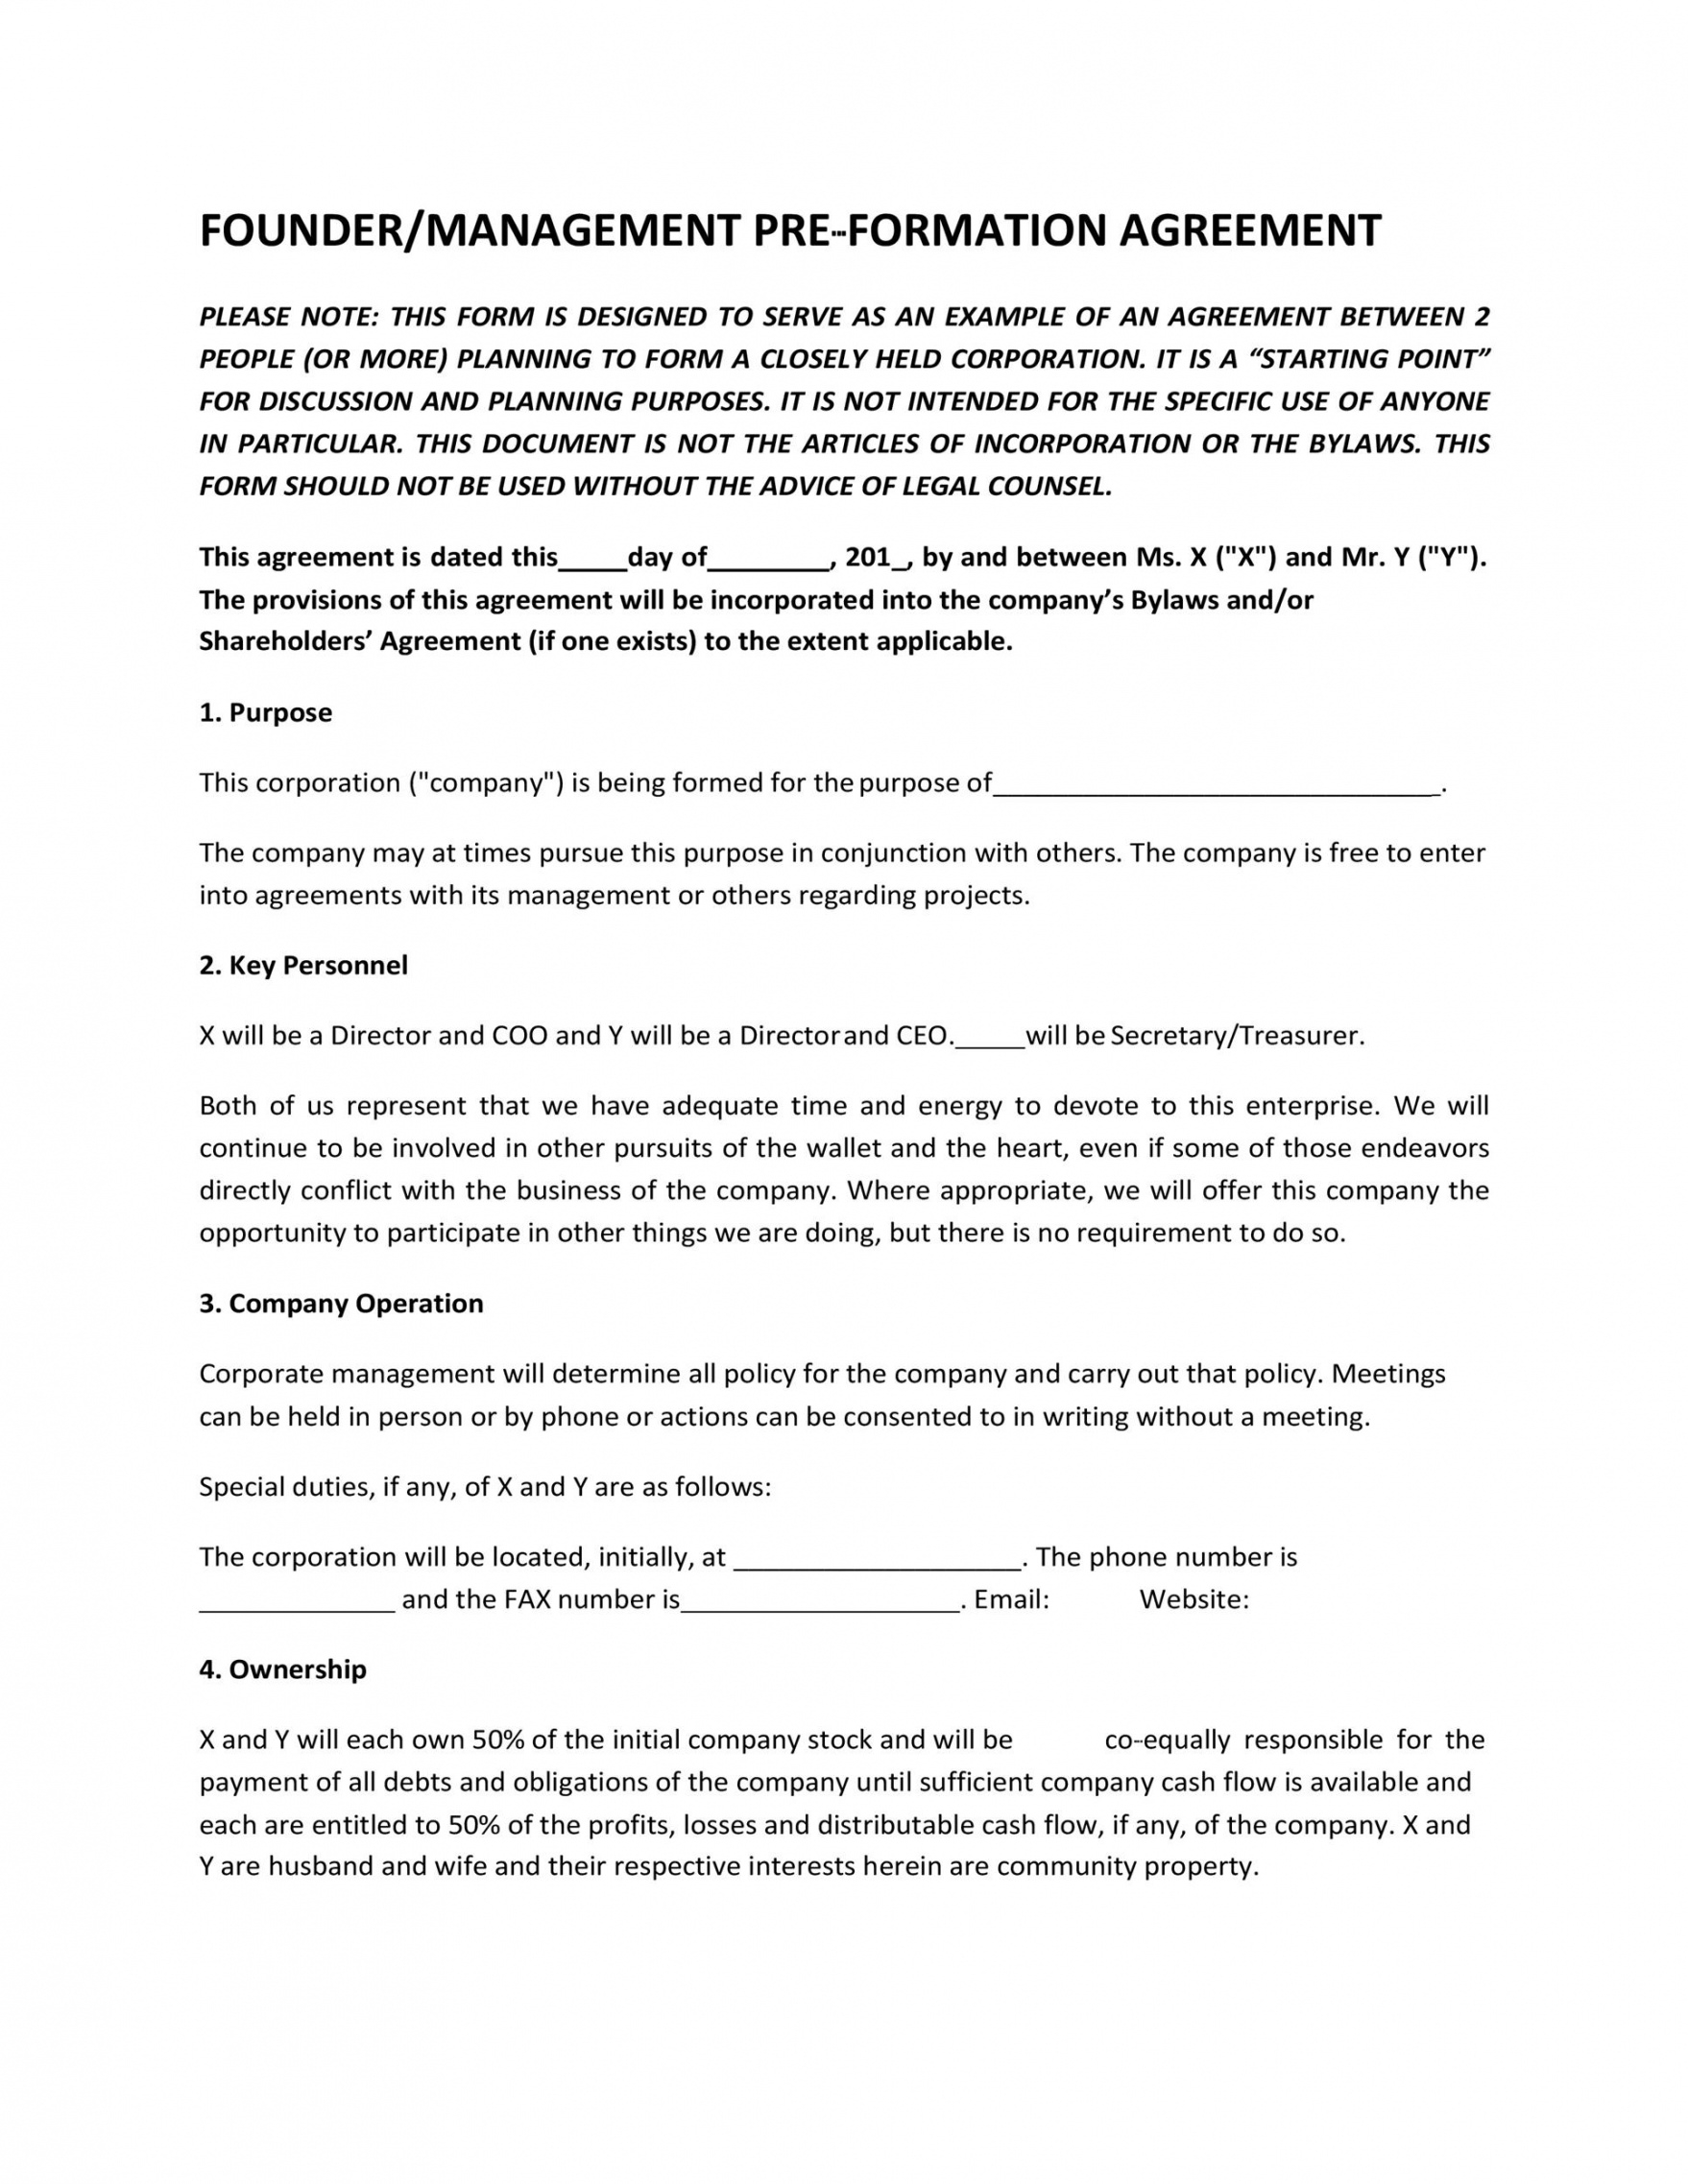 22 great founders agreement tramples for any startup ᐅ founder vesting agreement template word